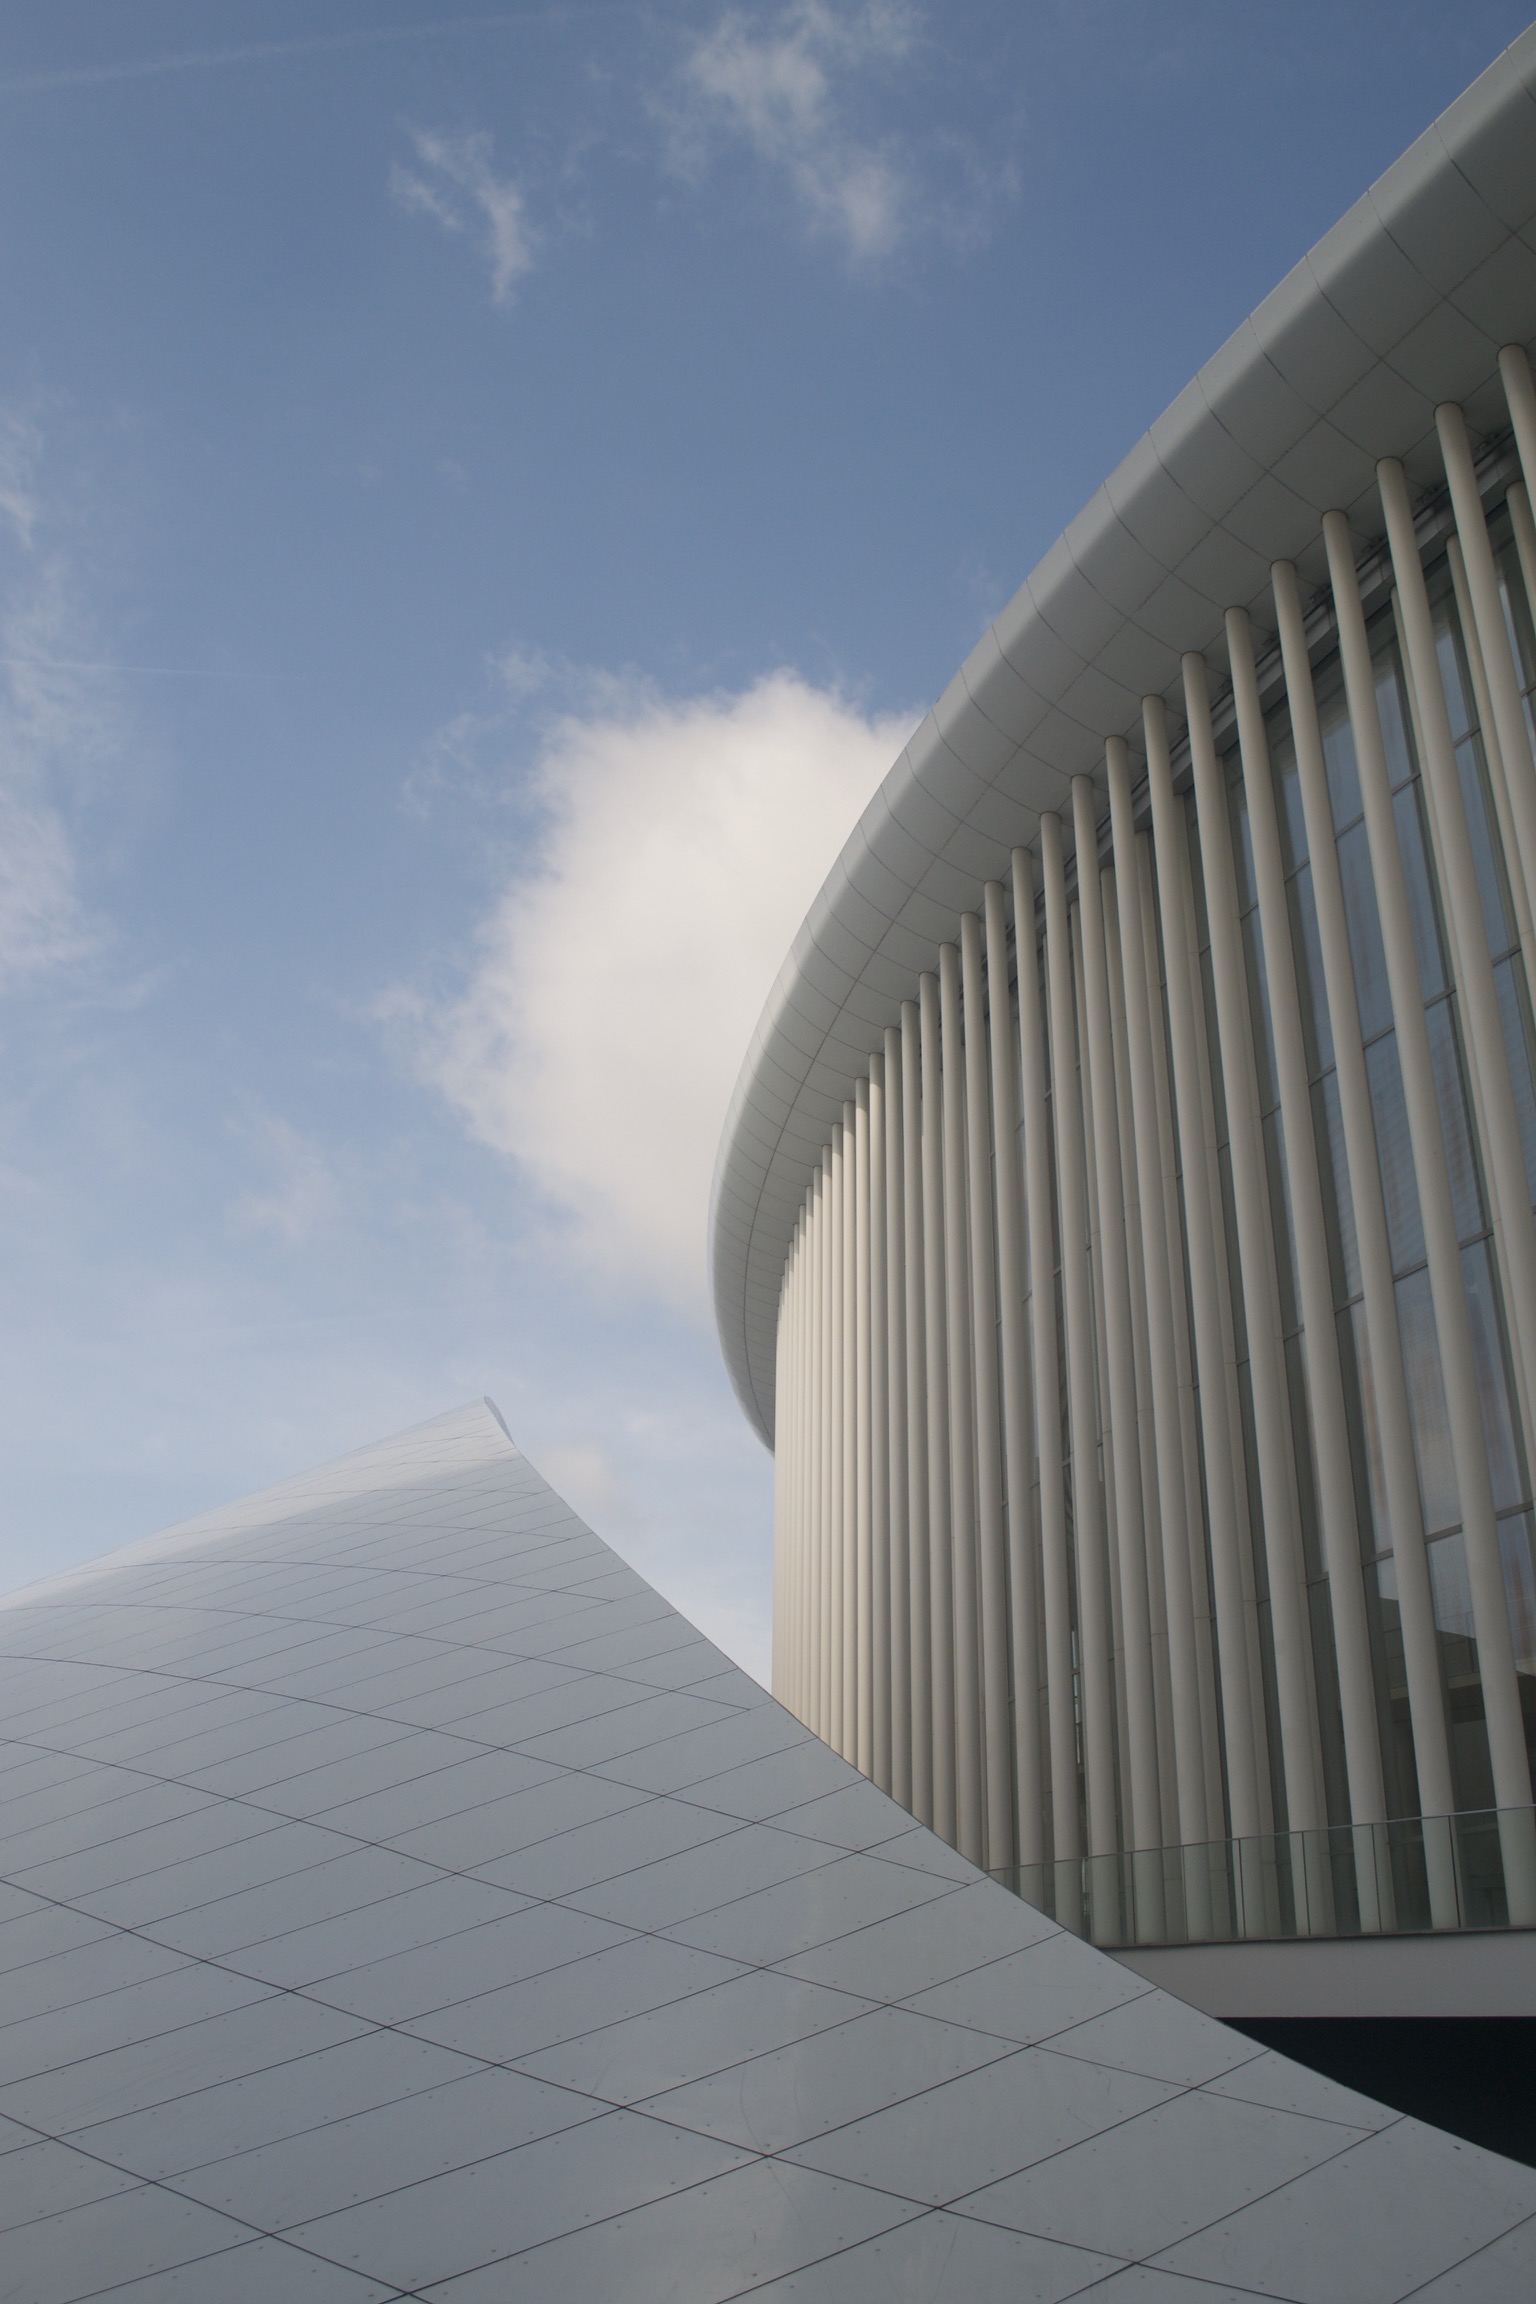 A white paneled slope wraps around a tall, round glass building with white columns and cornice.